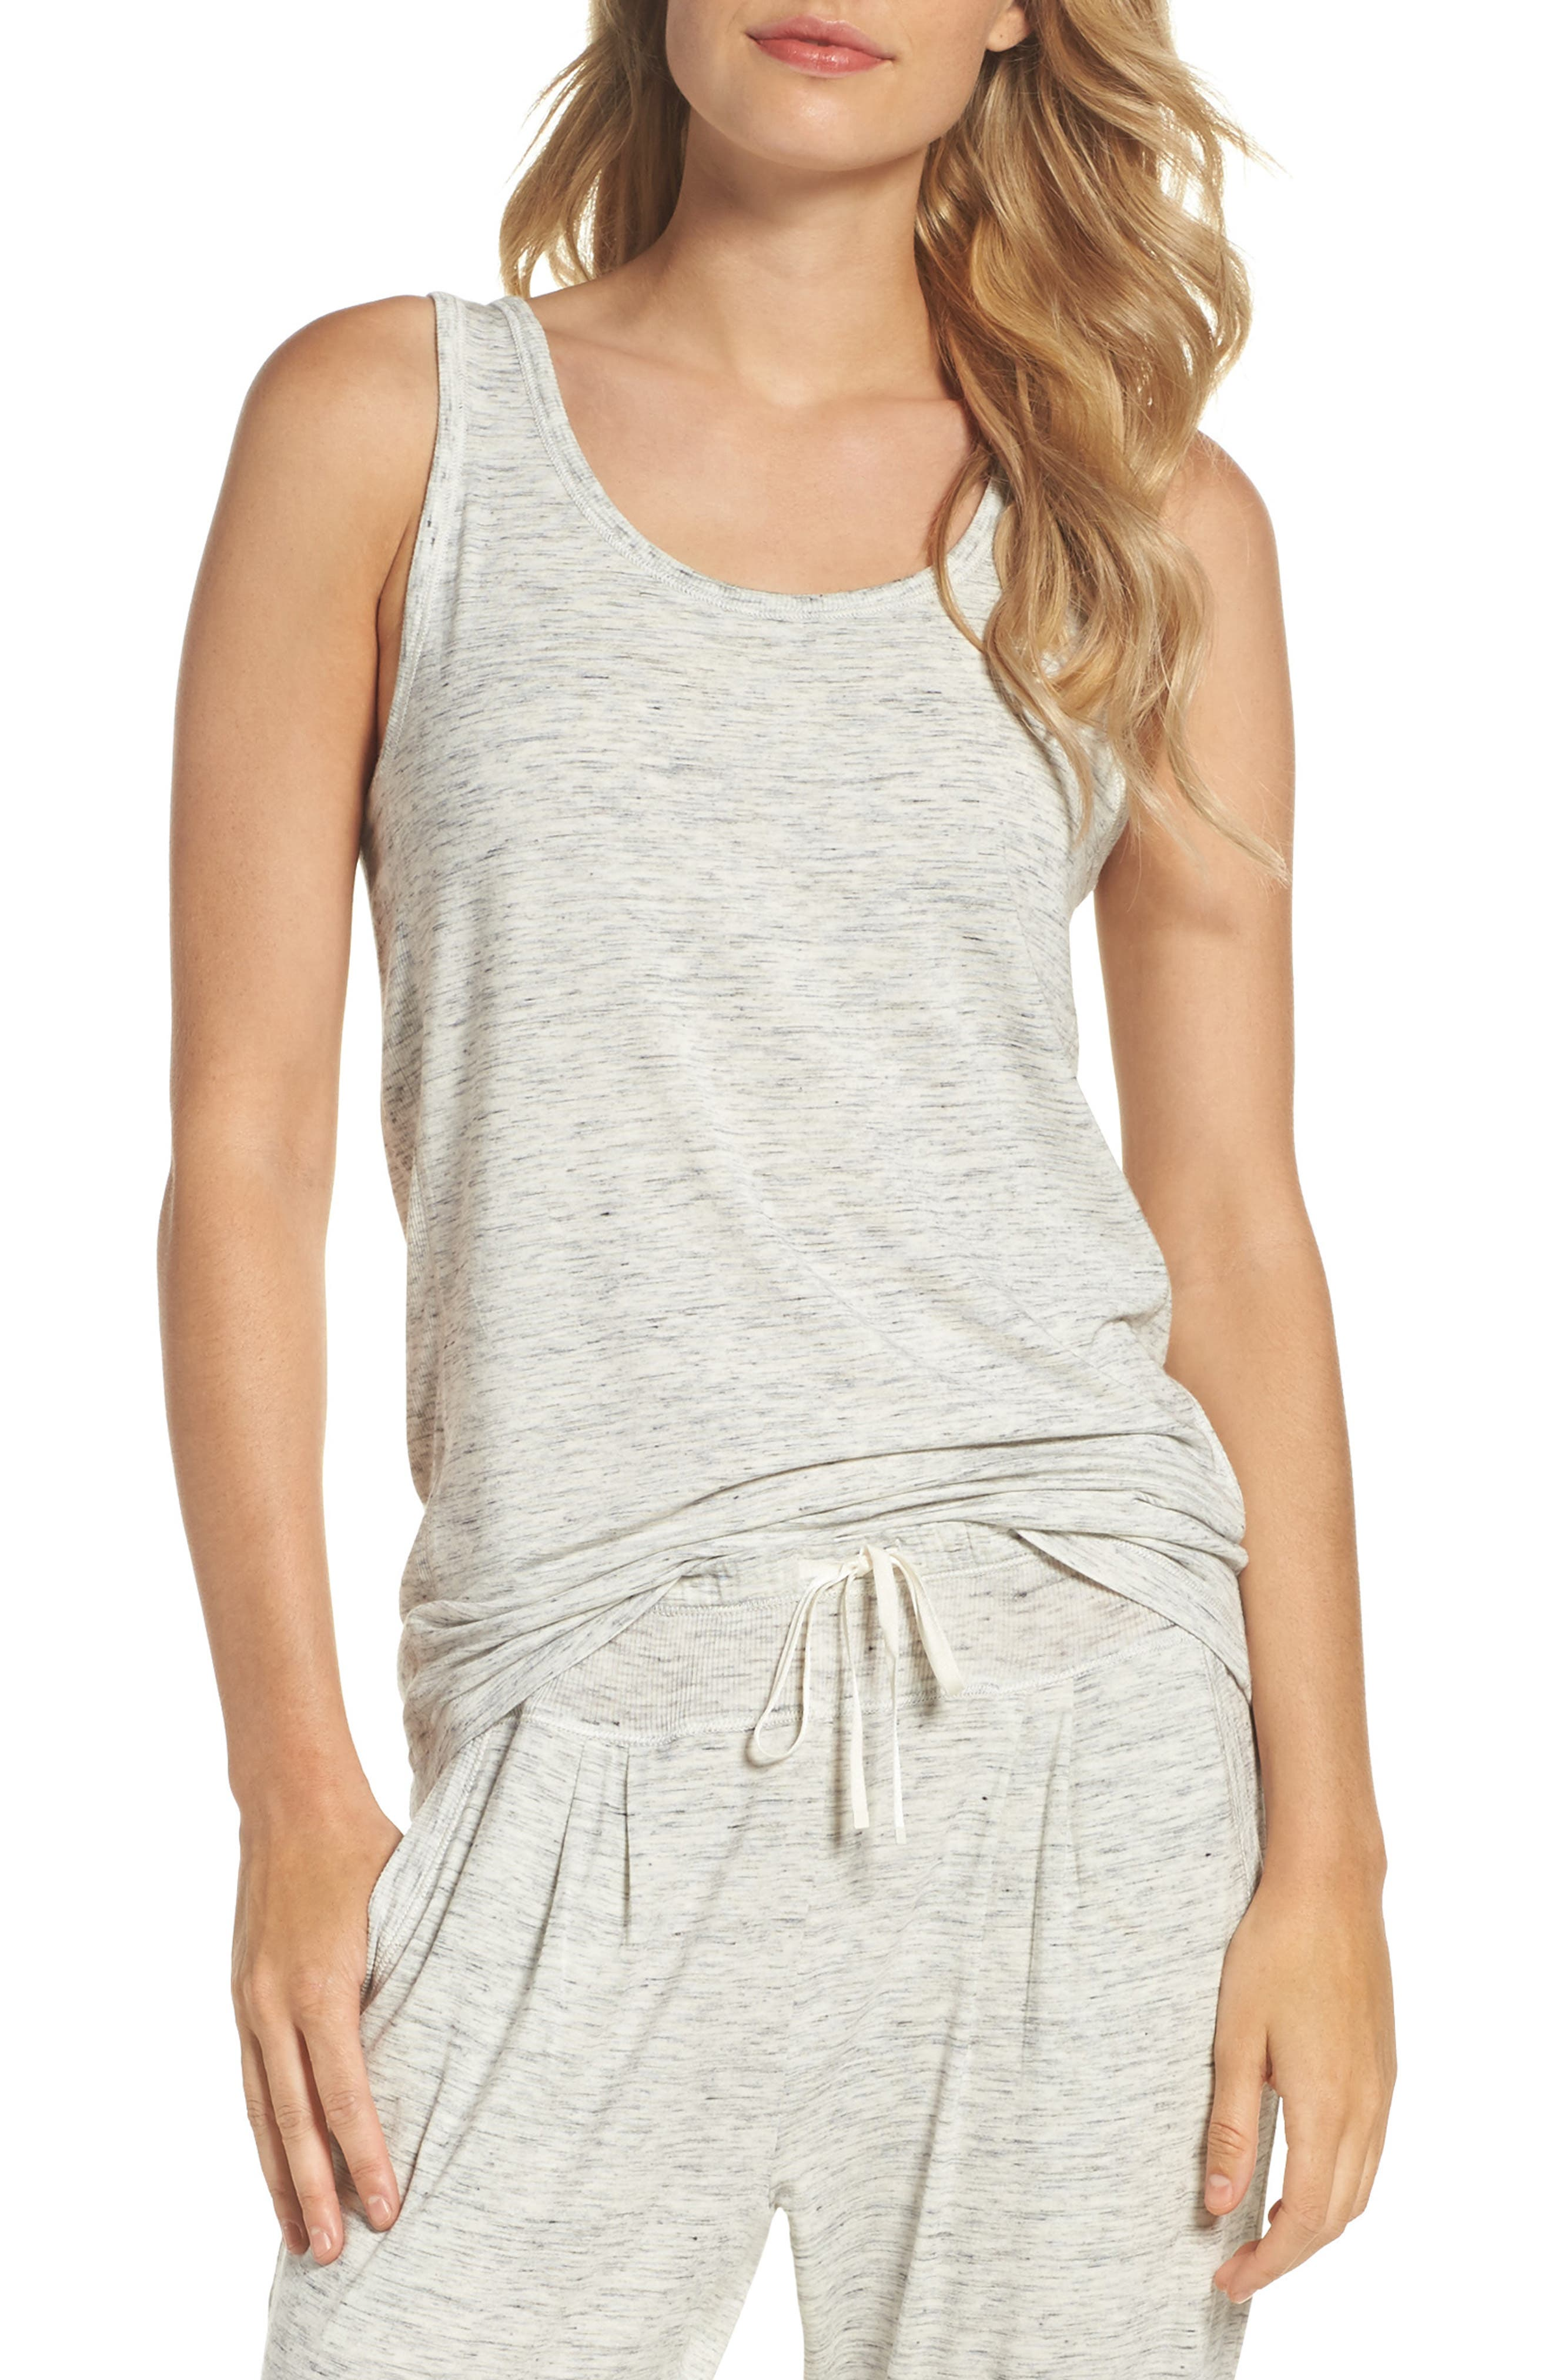 DKNY City Essentials Lounge Tank